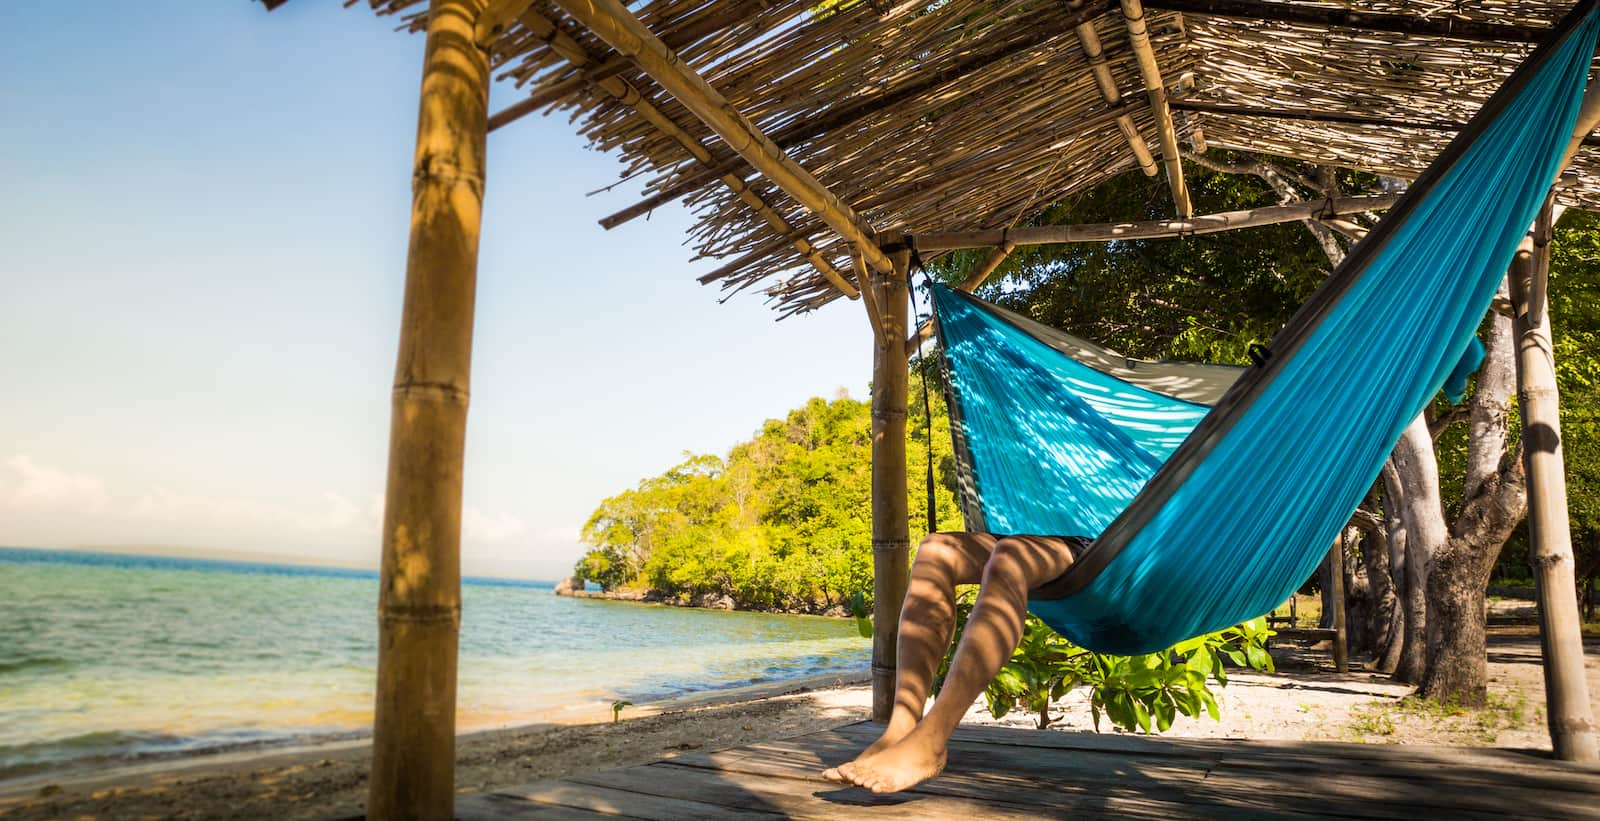 The Right Way To Lay In Your Hammock